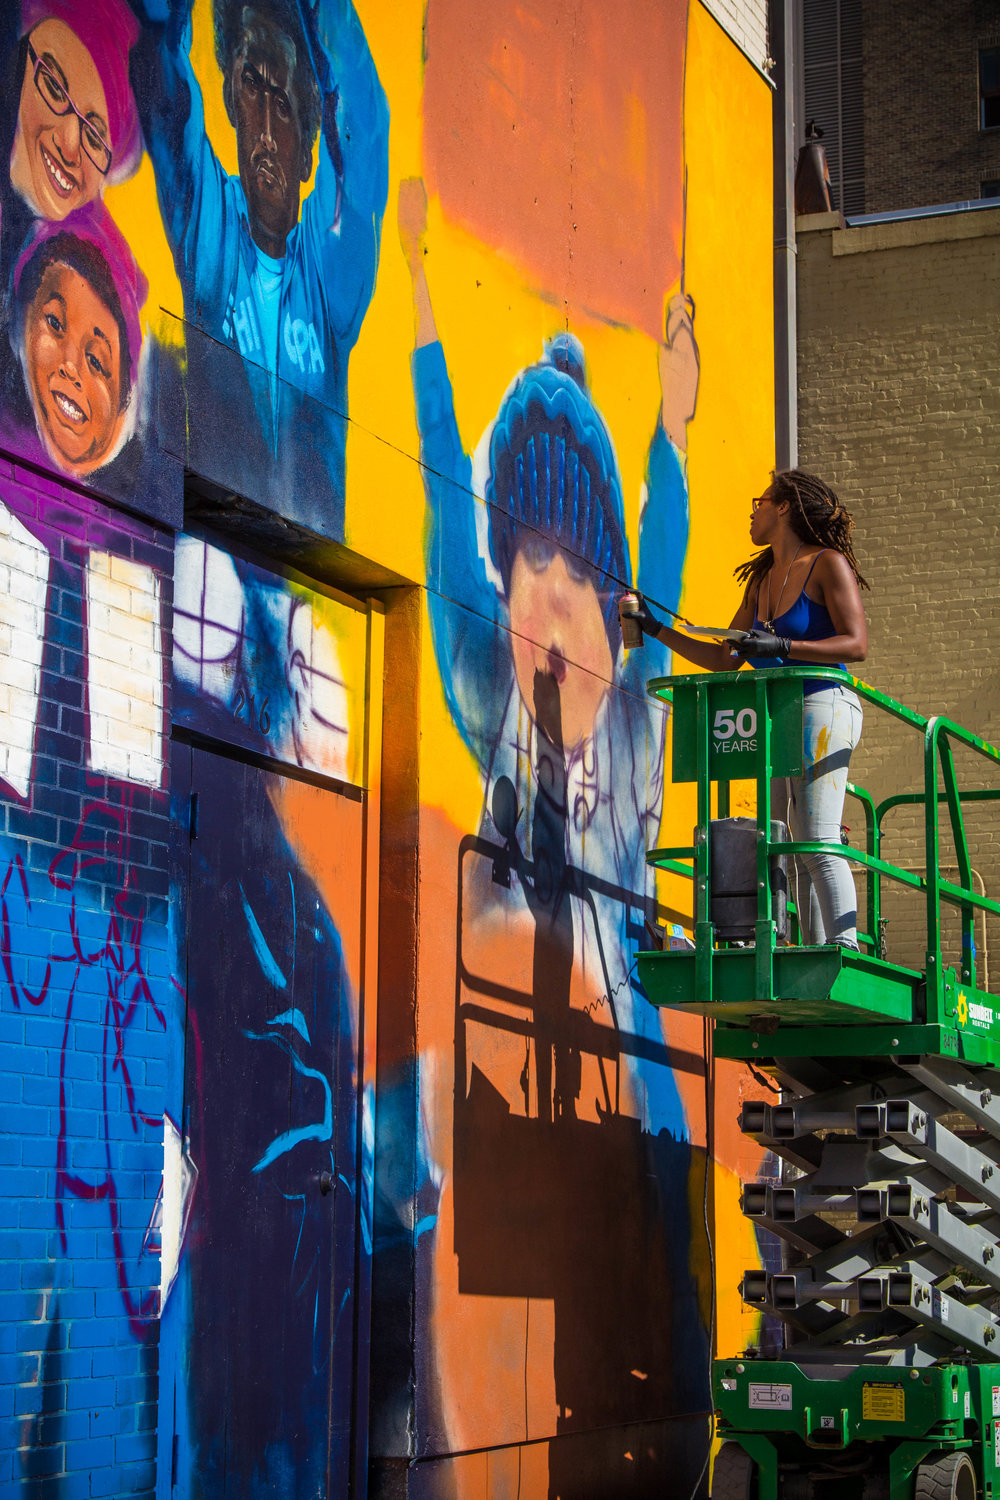 #DareToDissent - Commissioned by the ACLU of North Carolina via the Raleigh Murals Project. This was my first permanent exterior mural!